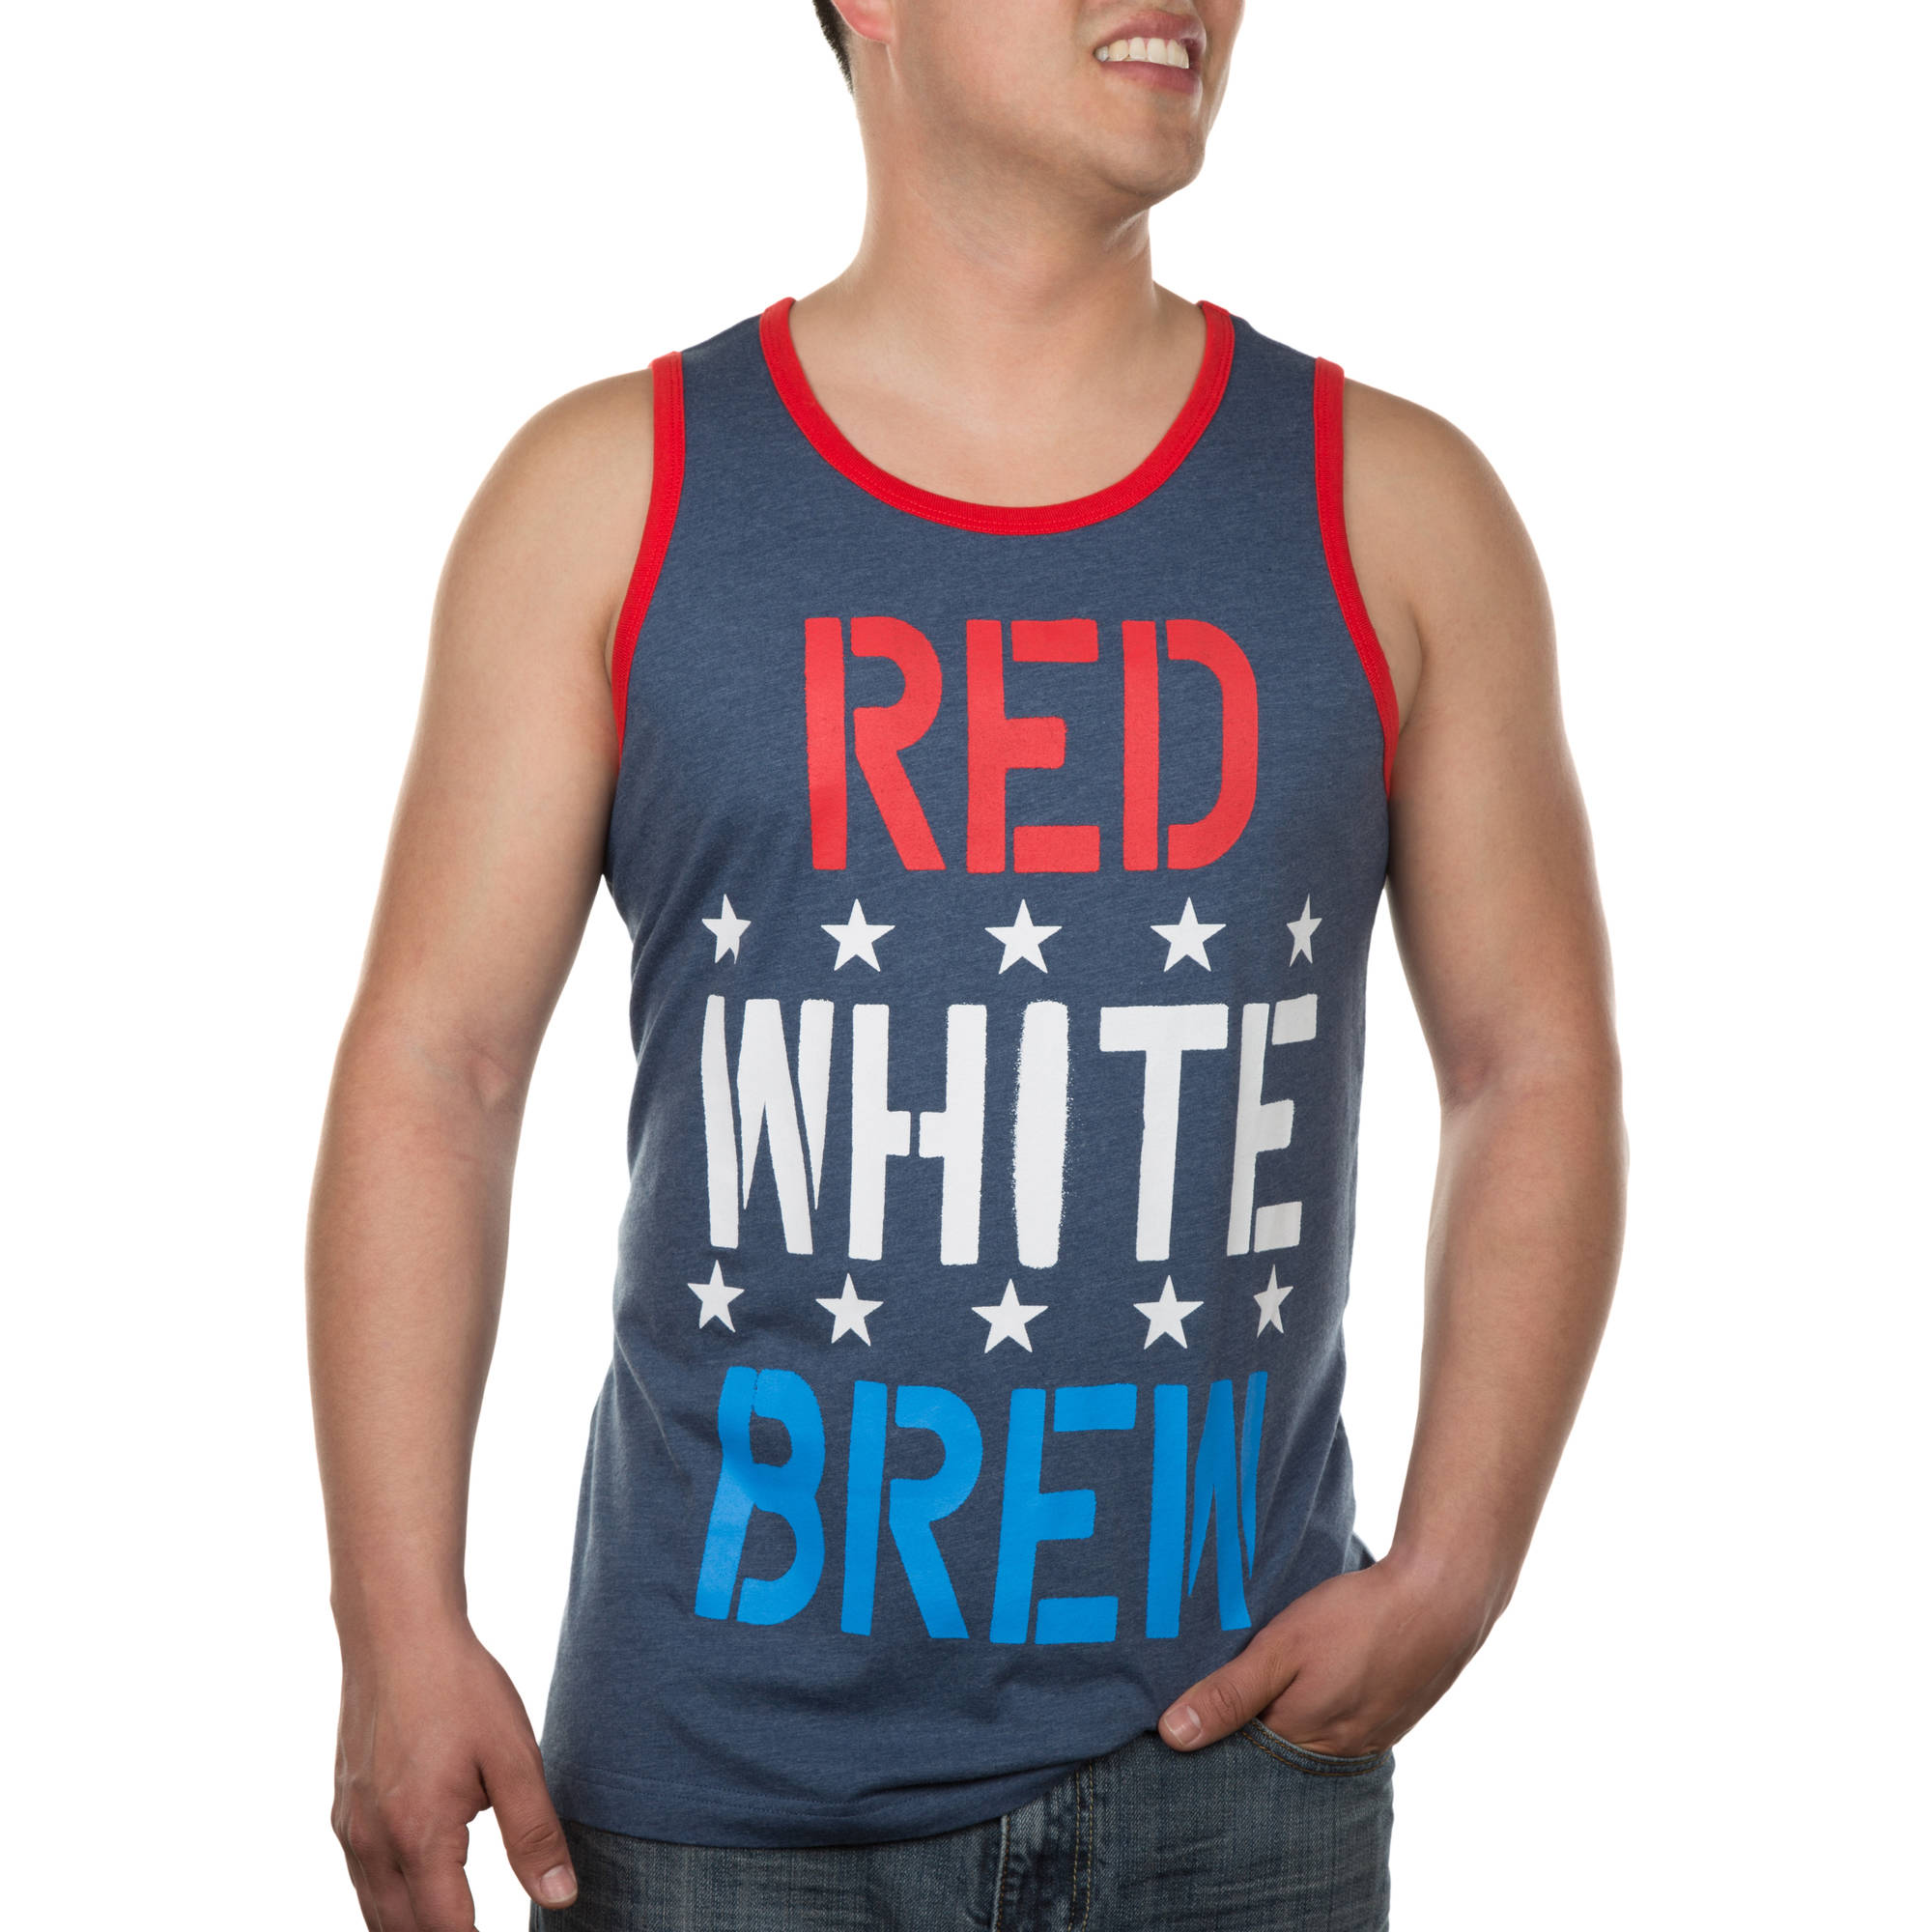 """Red White Brew"" Humor Patriotic Men's Ribbed Heathered Tank"